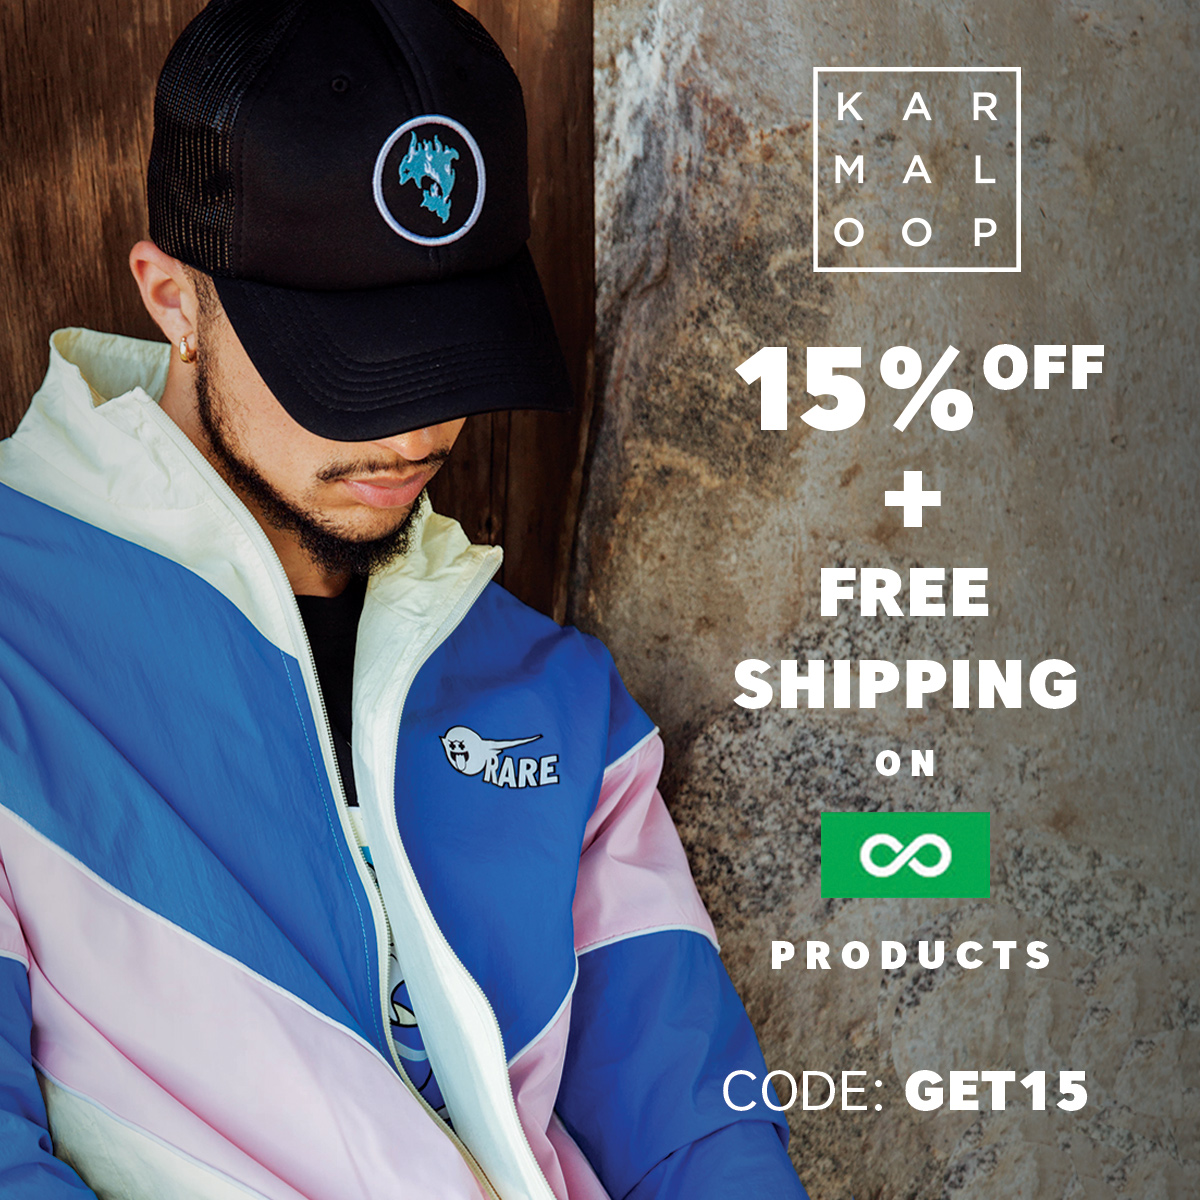 Shop 15% Off + Free Shipping at Karmaloop Today!